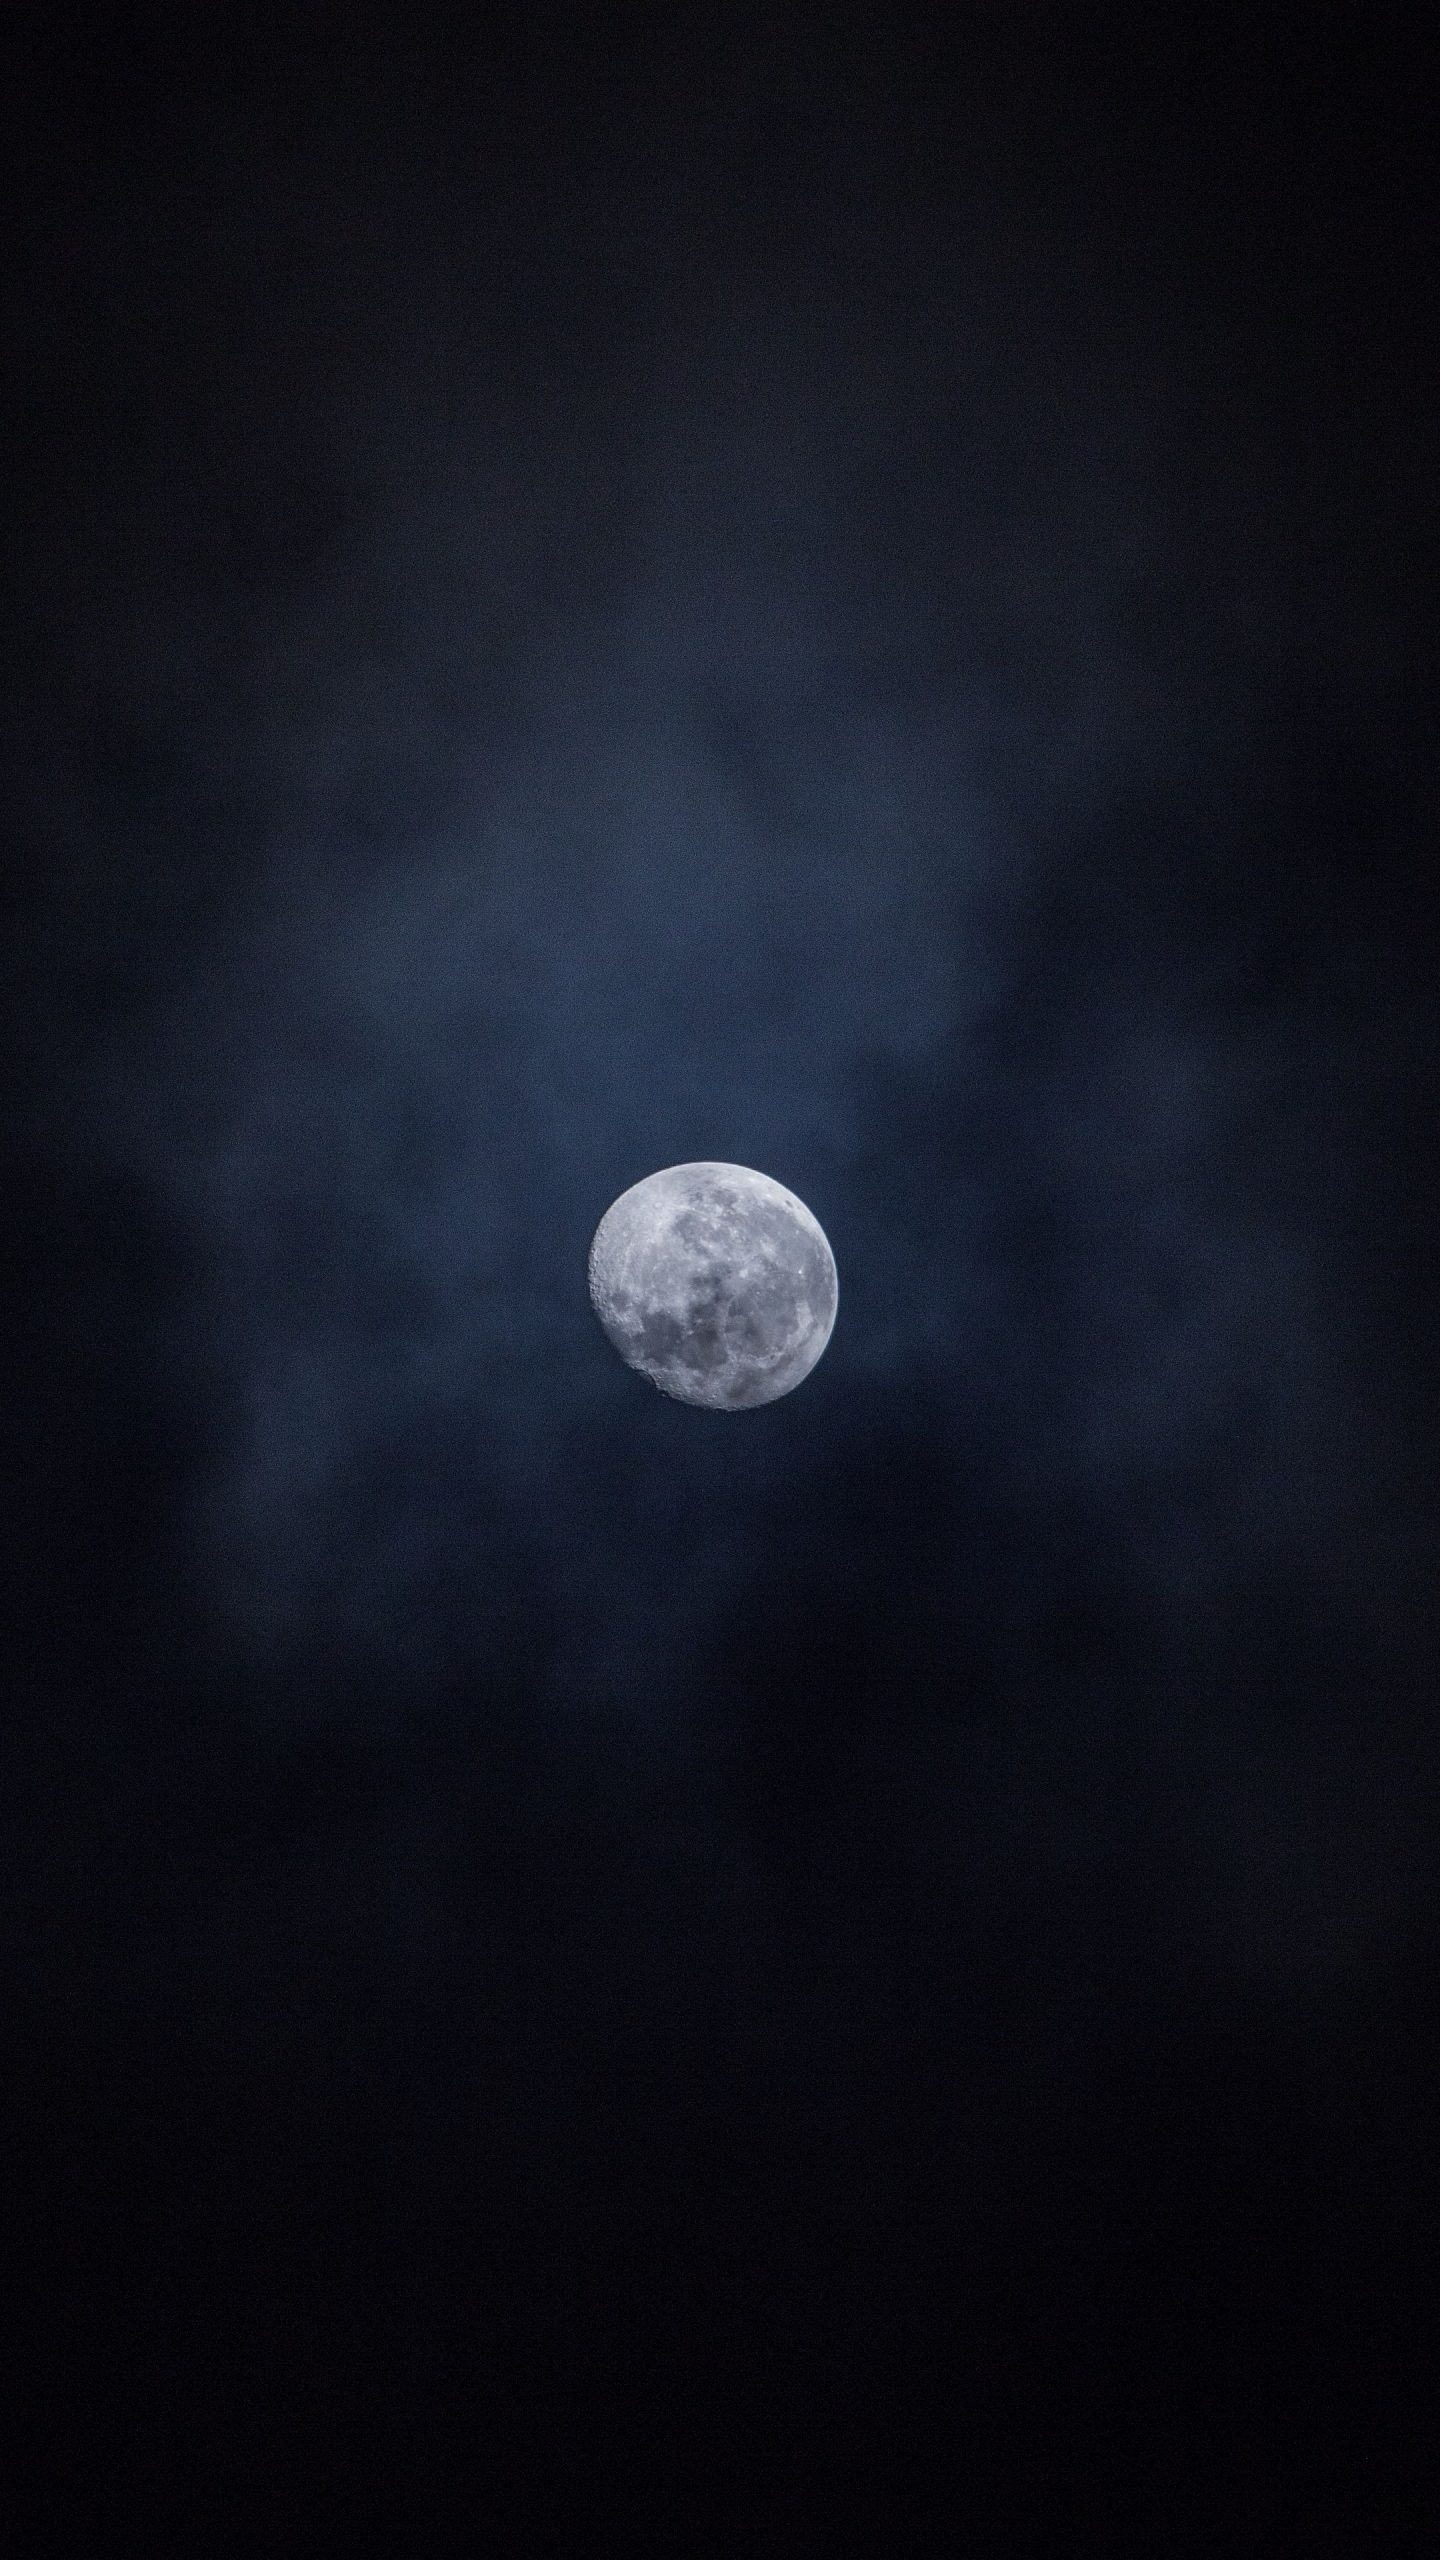 Cloudy Moon Dark Android 4K Amoled Wallpapers Download ⋆ Traxzee